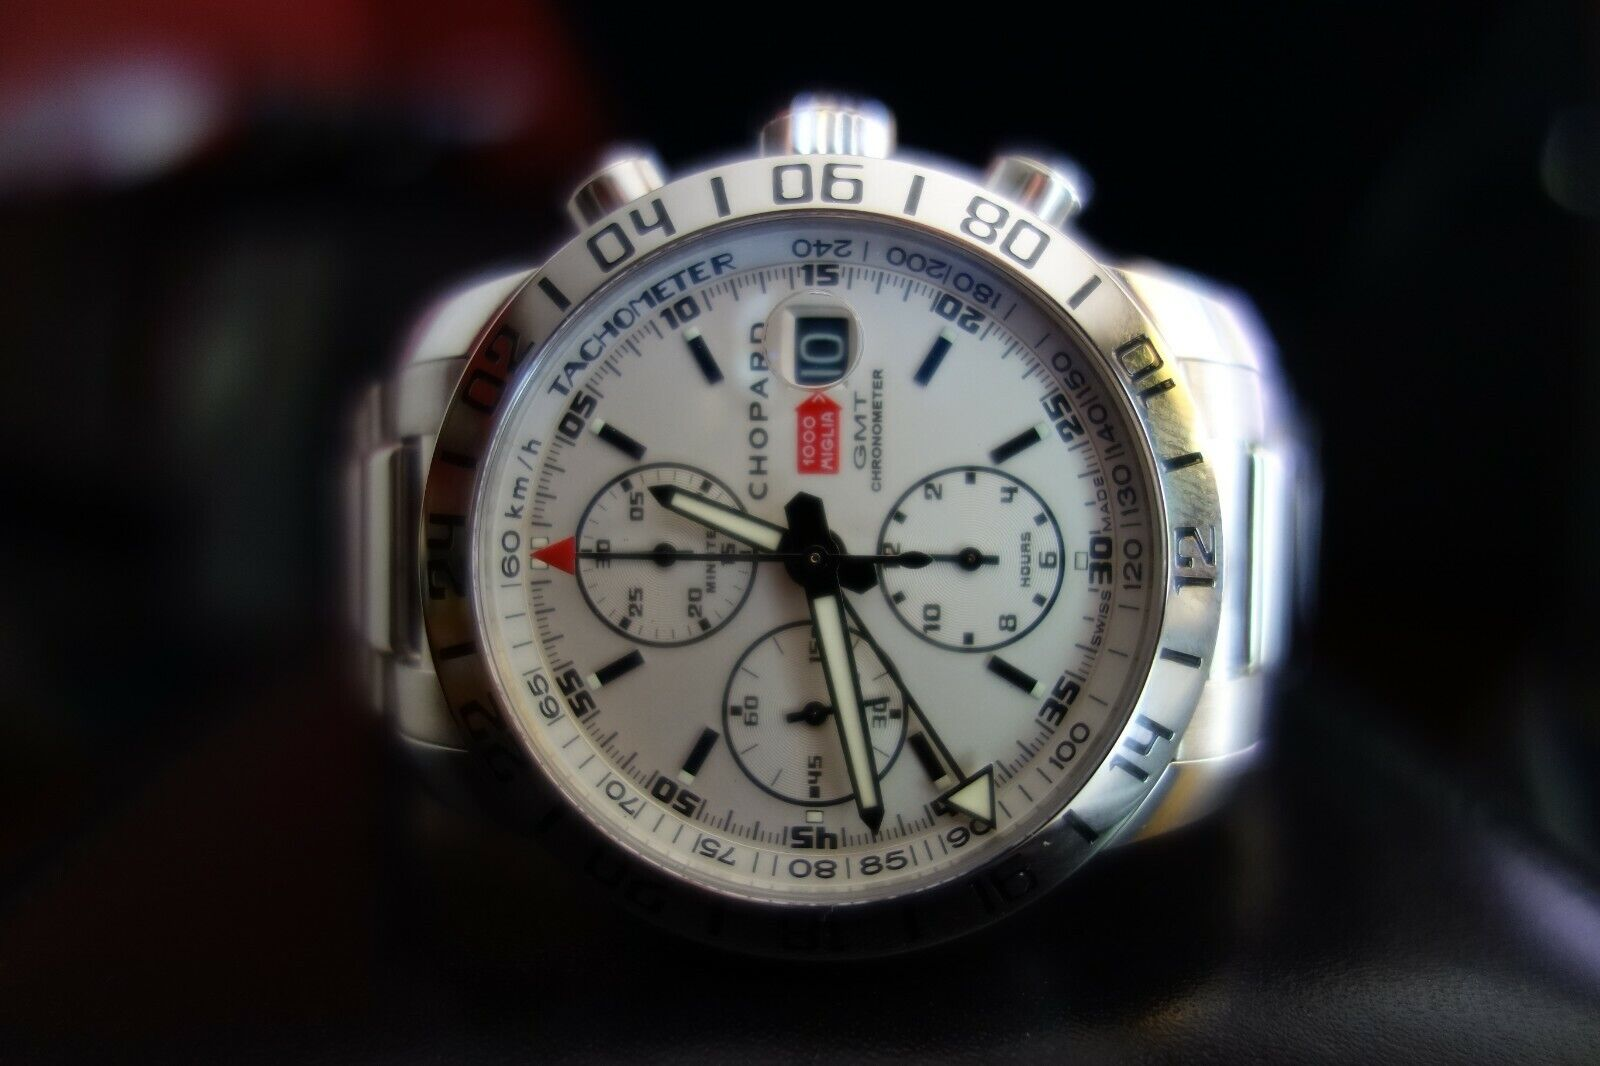 Chopard Mille Miglia GMT Chronograph 158992-3002 - watch picture 1